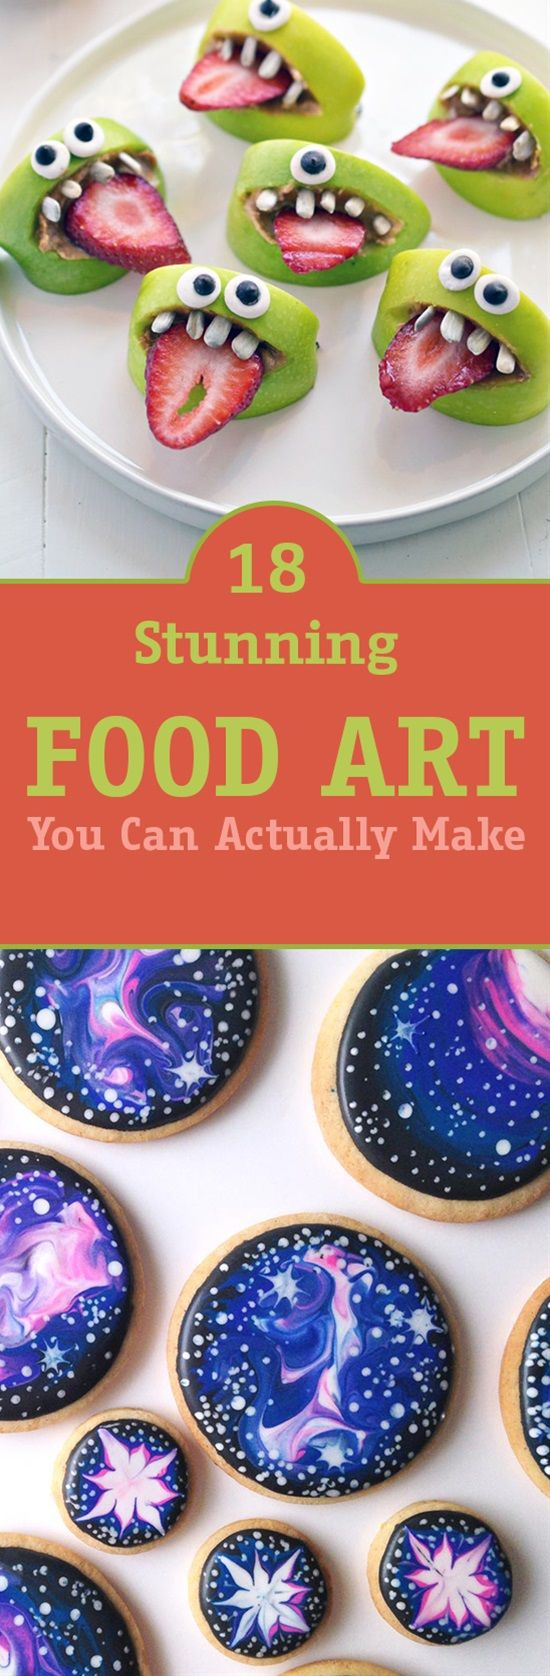 18 Stunning Food Art You Can Actually Make